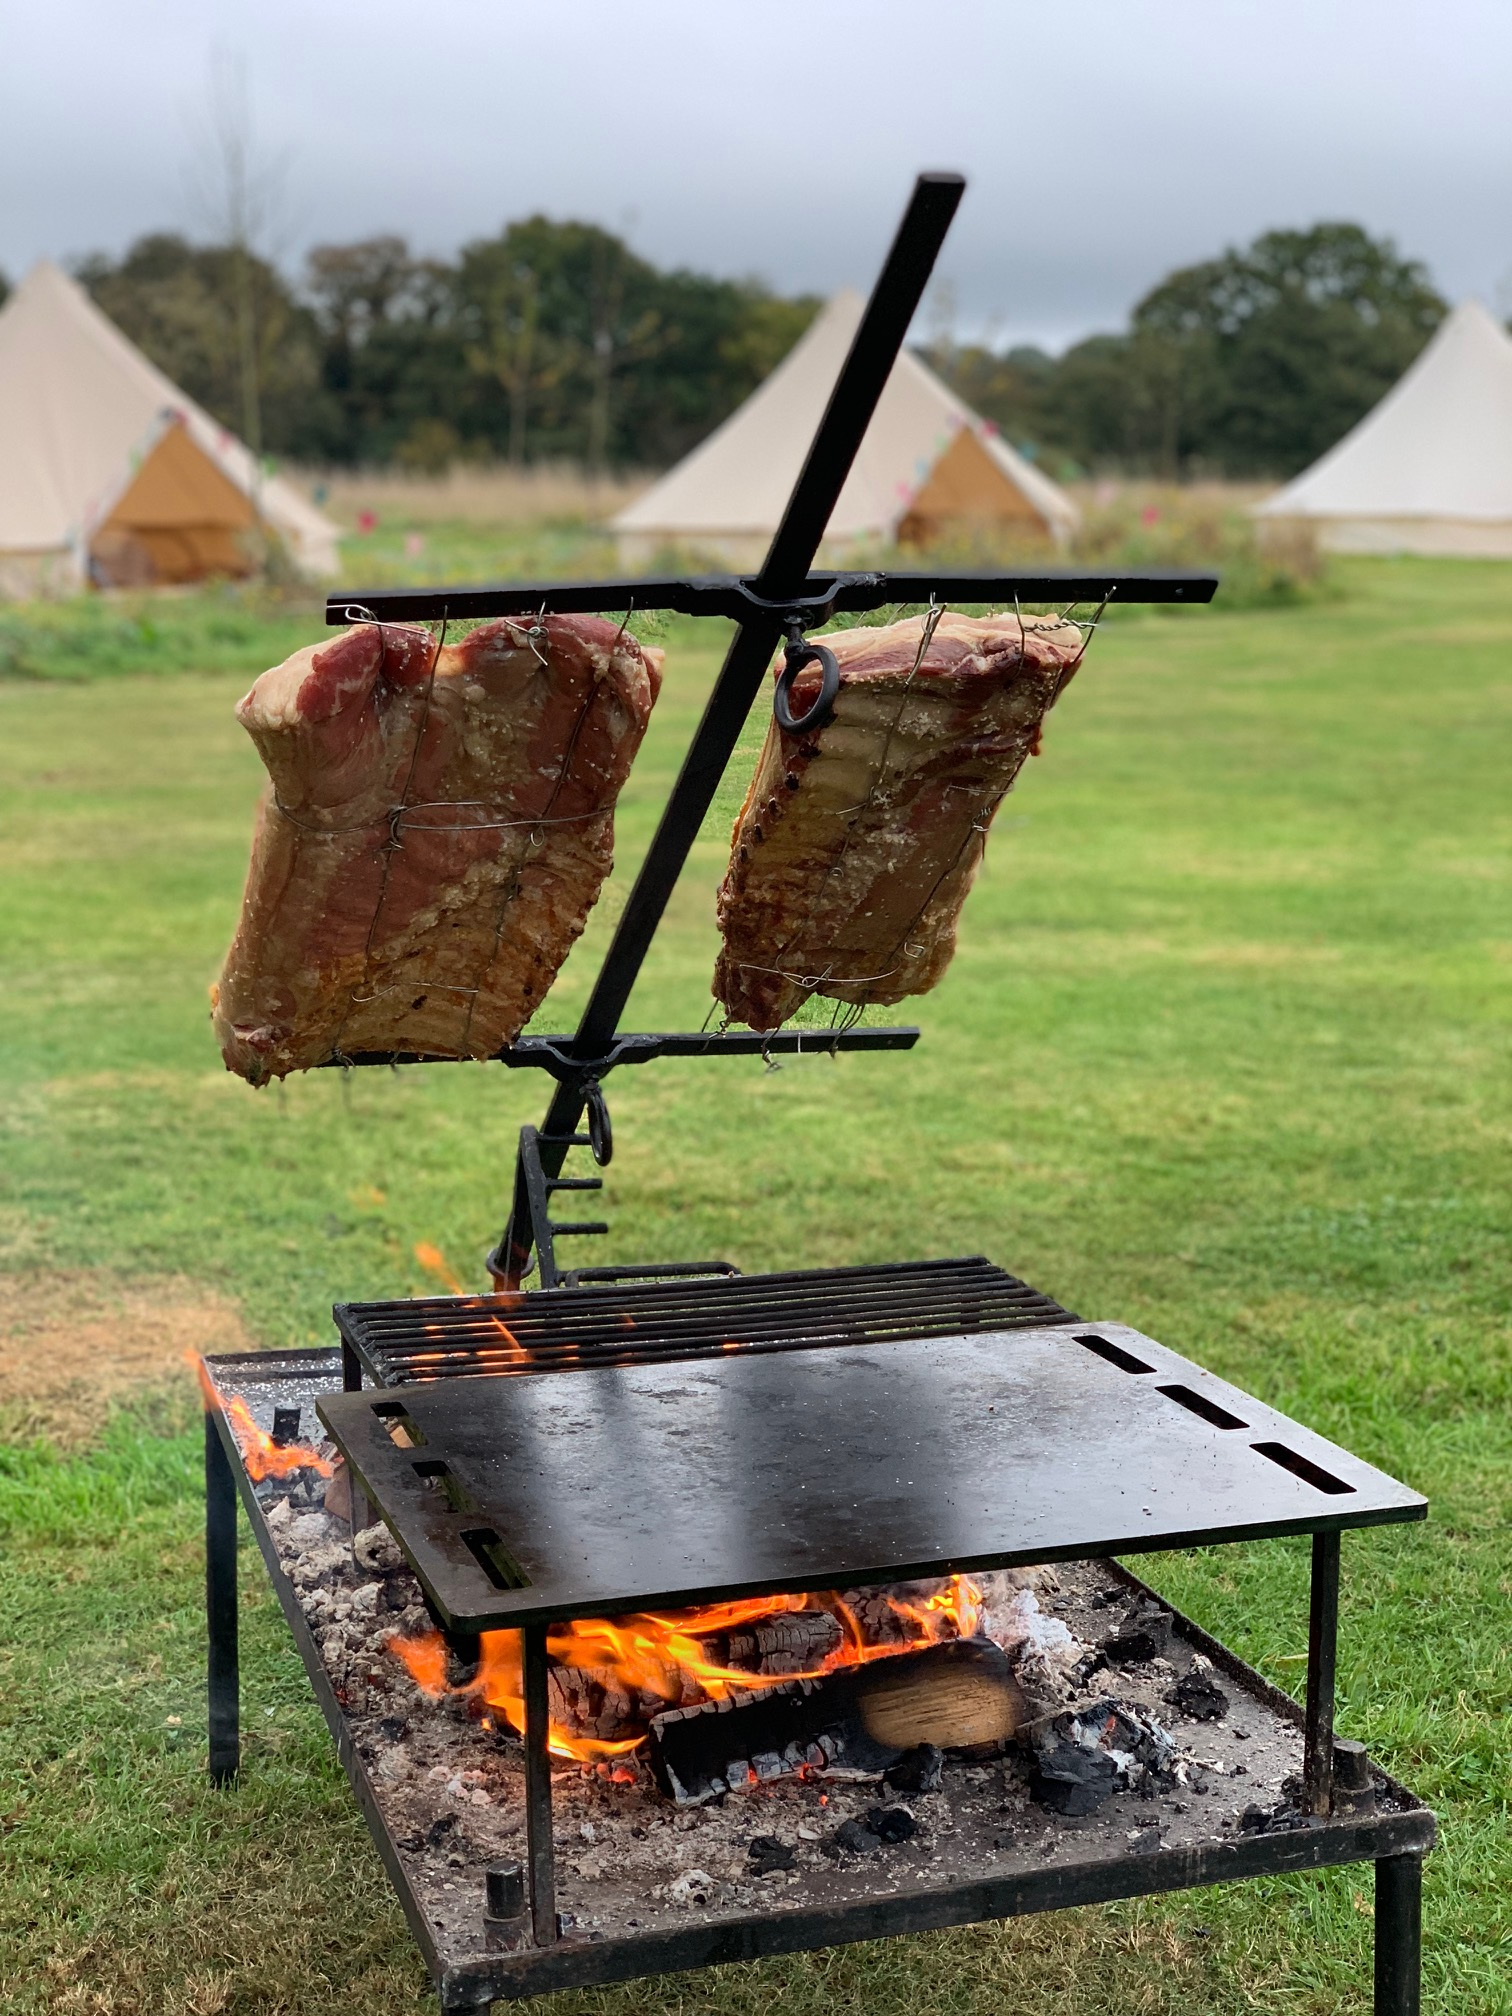 bbq catering london 1 - Tailormade BBQ catering in Reigate, Surrey